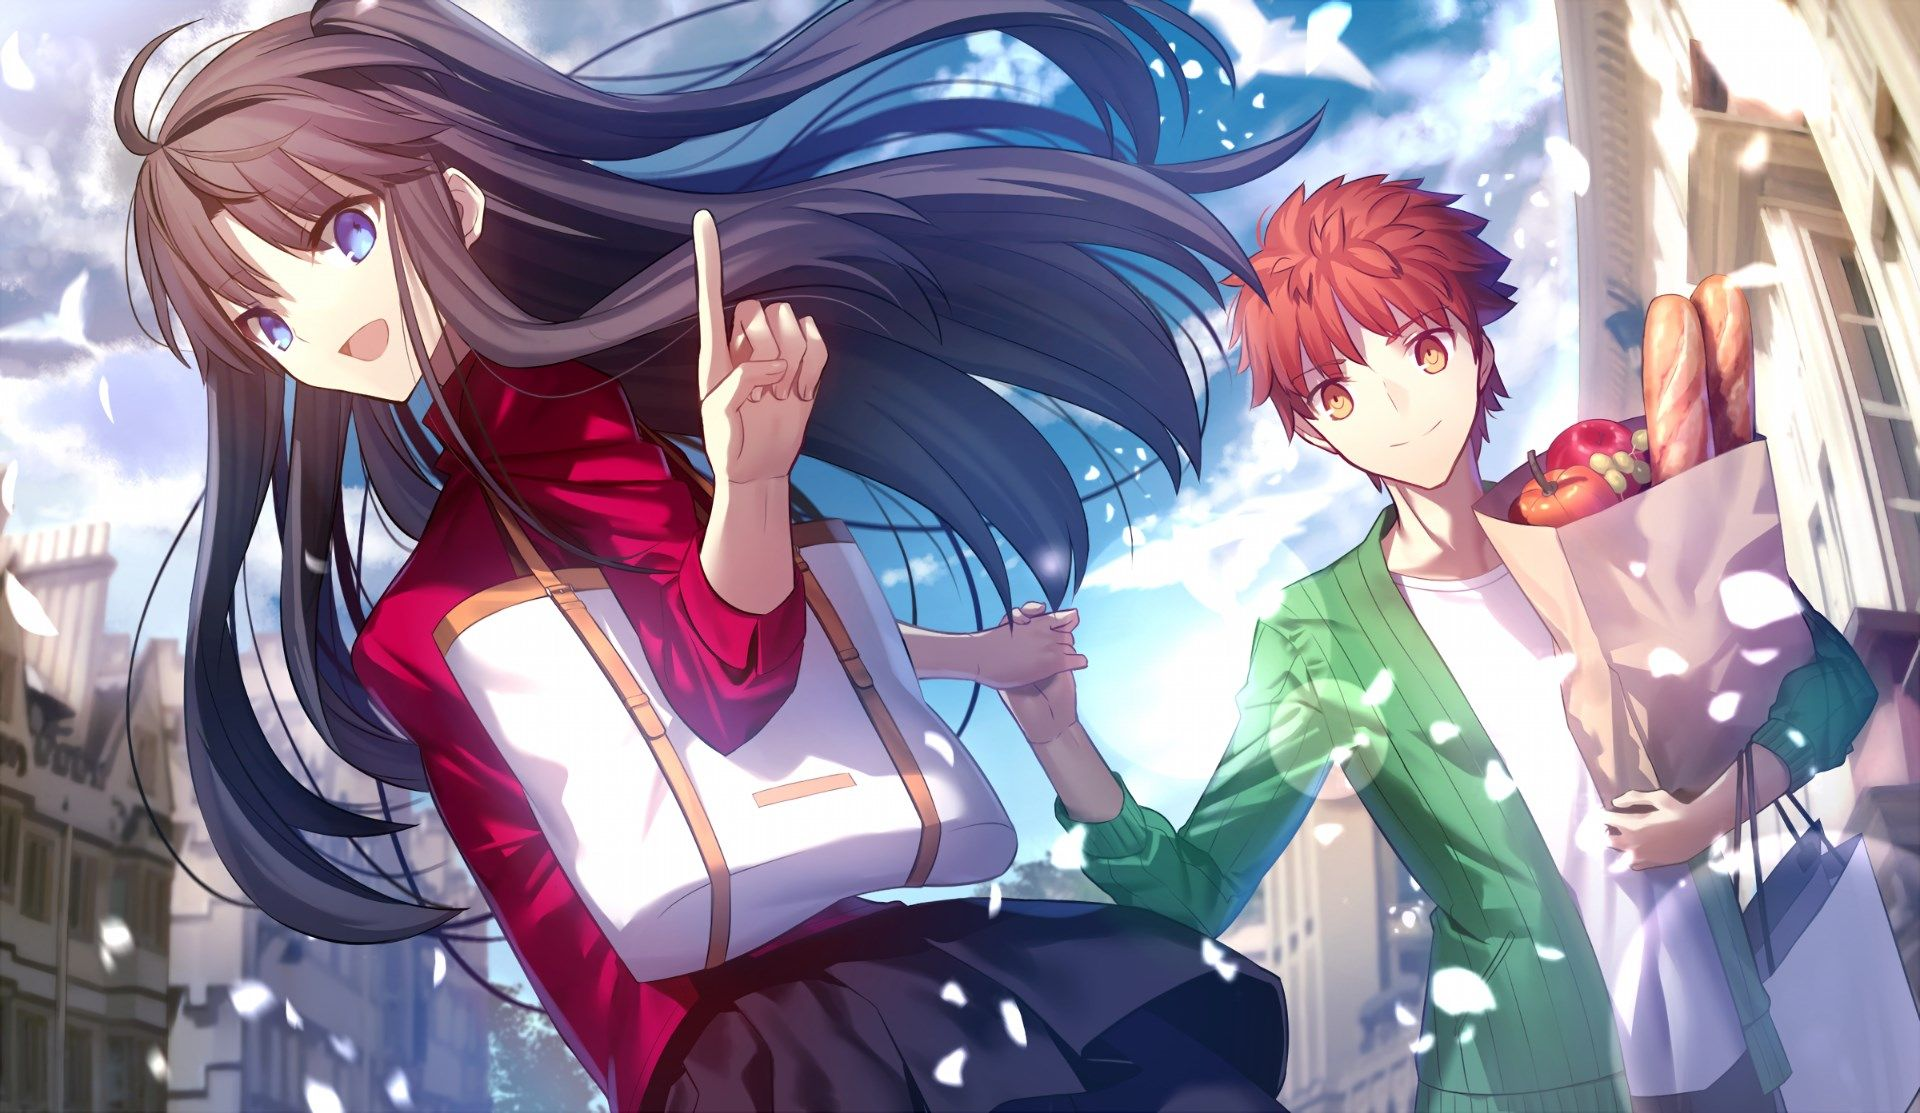 1920x1113 Wallpaper Images Fatestay Night Unlimited Blade Works